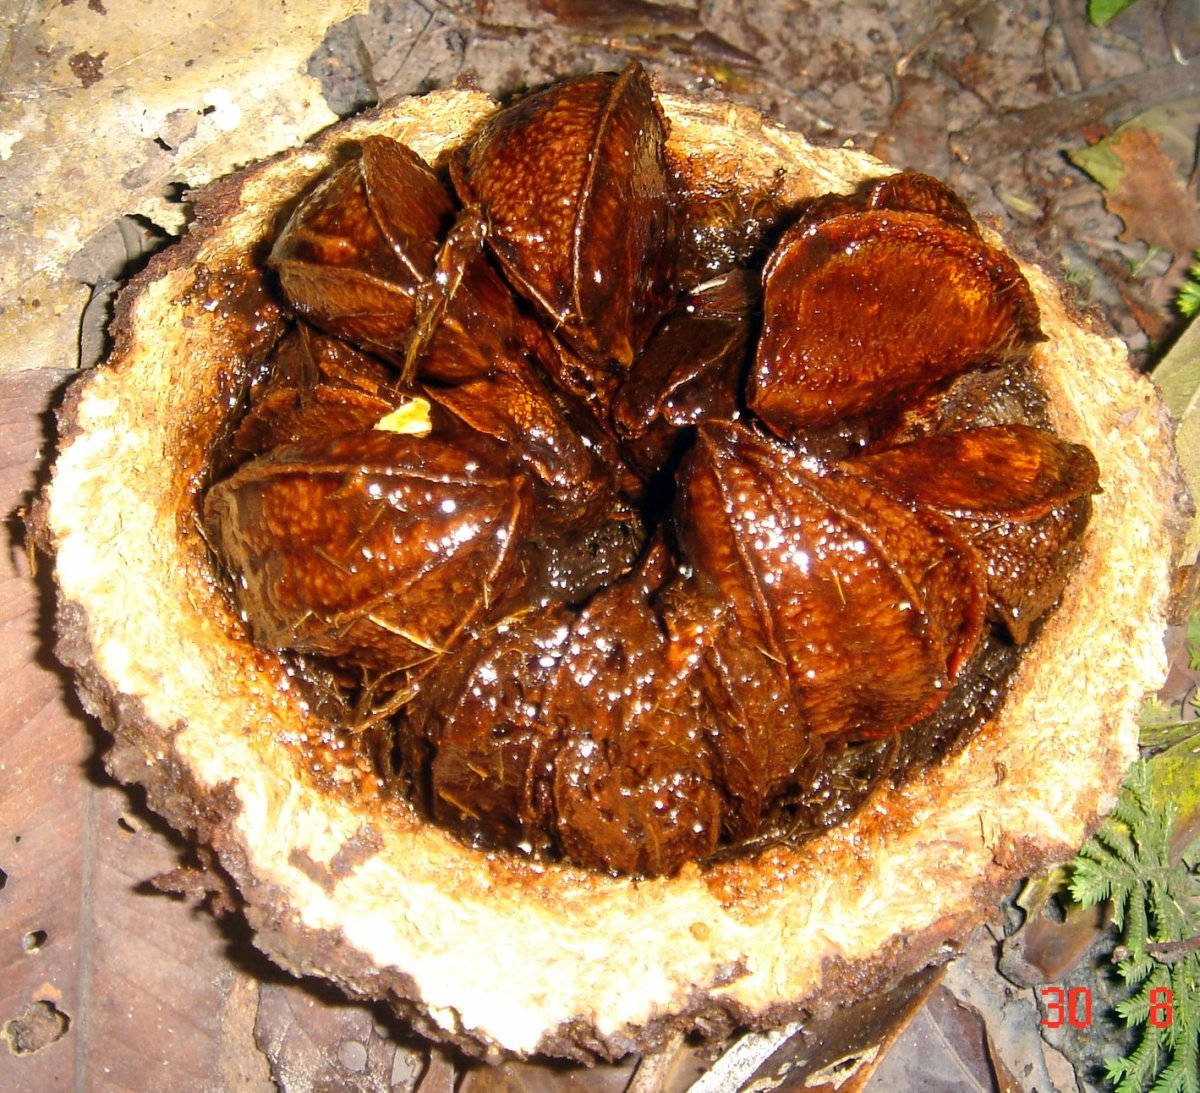 Brazil nuts are found in an area where selenium is plentiful, which is why Brazil nuts are a rich source of selenium.